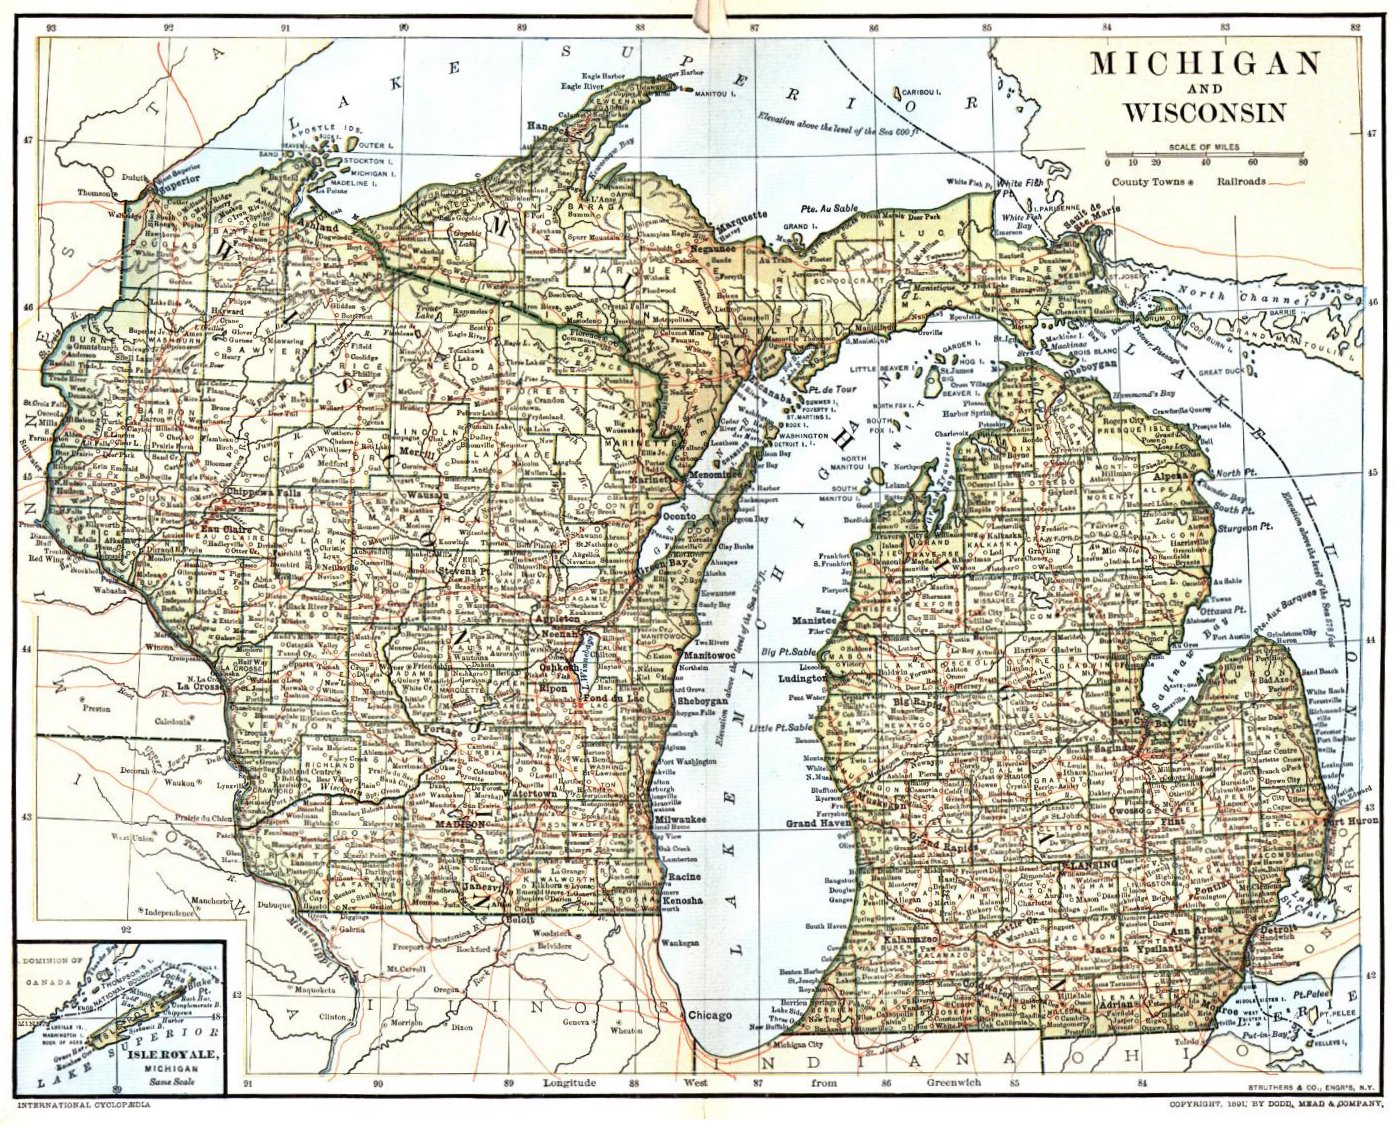 Wisconsin maps wisconsin digital map library table of contents wisconsin maps wisconsin digital map library table of contents united states digital map library wisconsin maps gumiabroncs Images